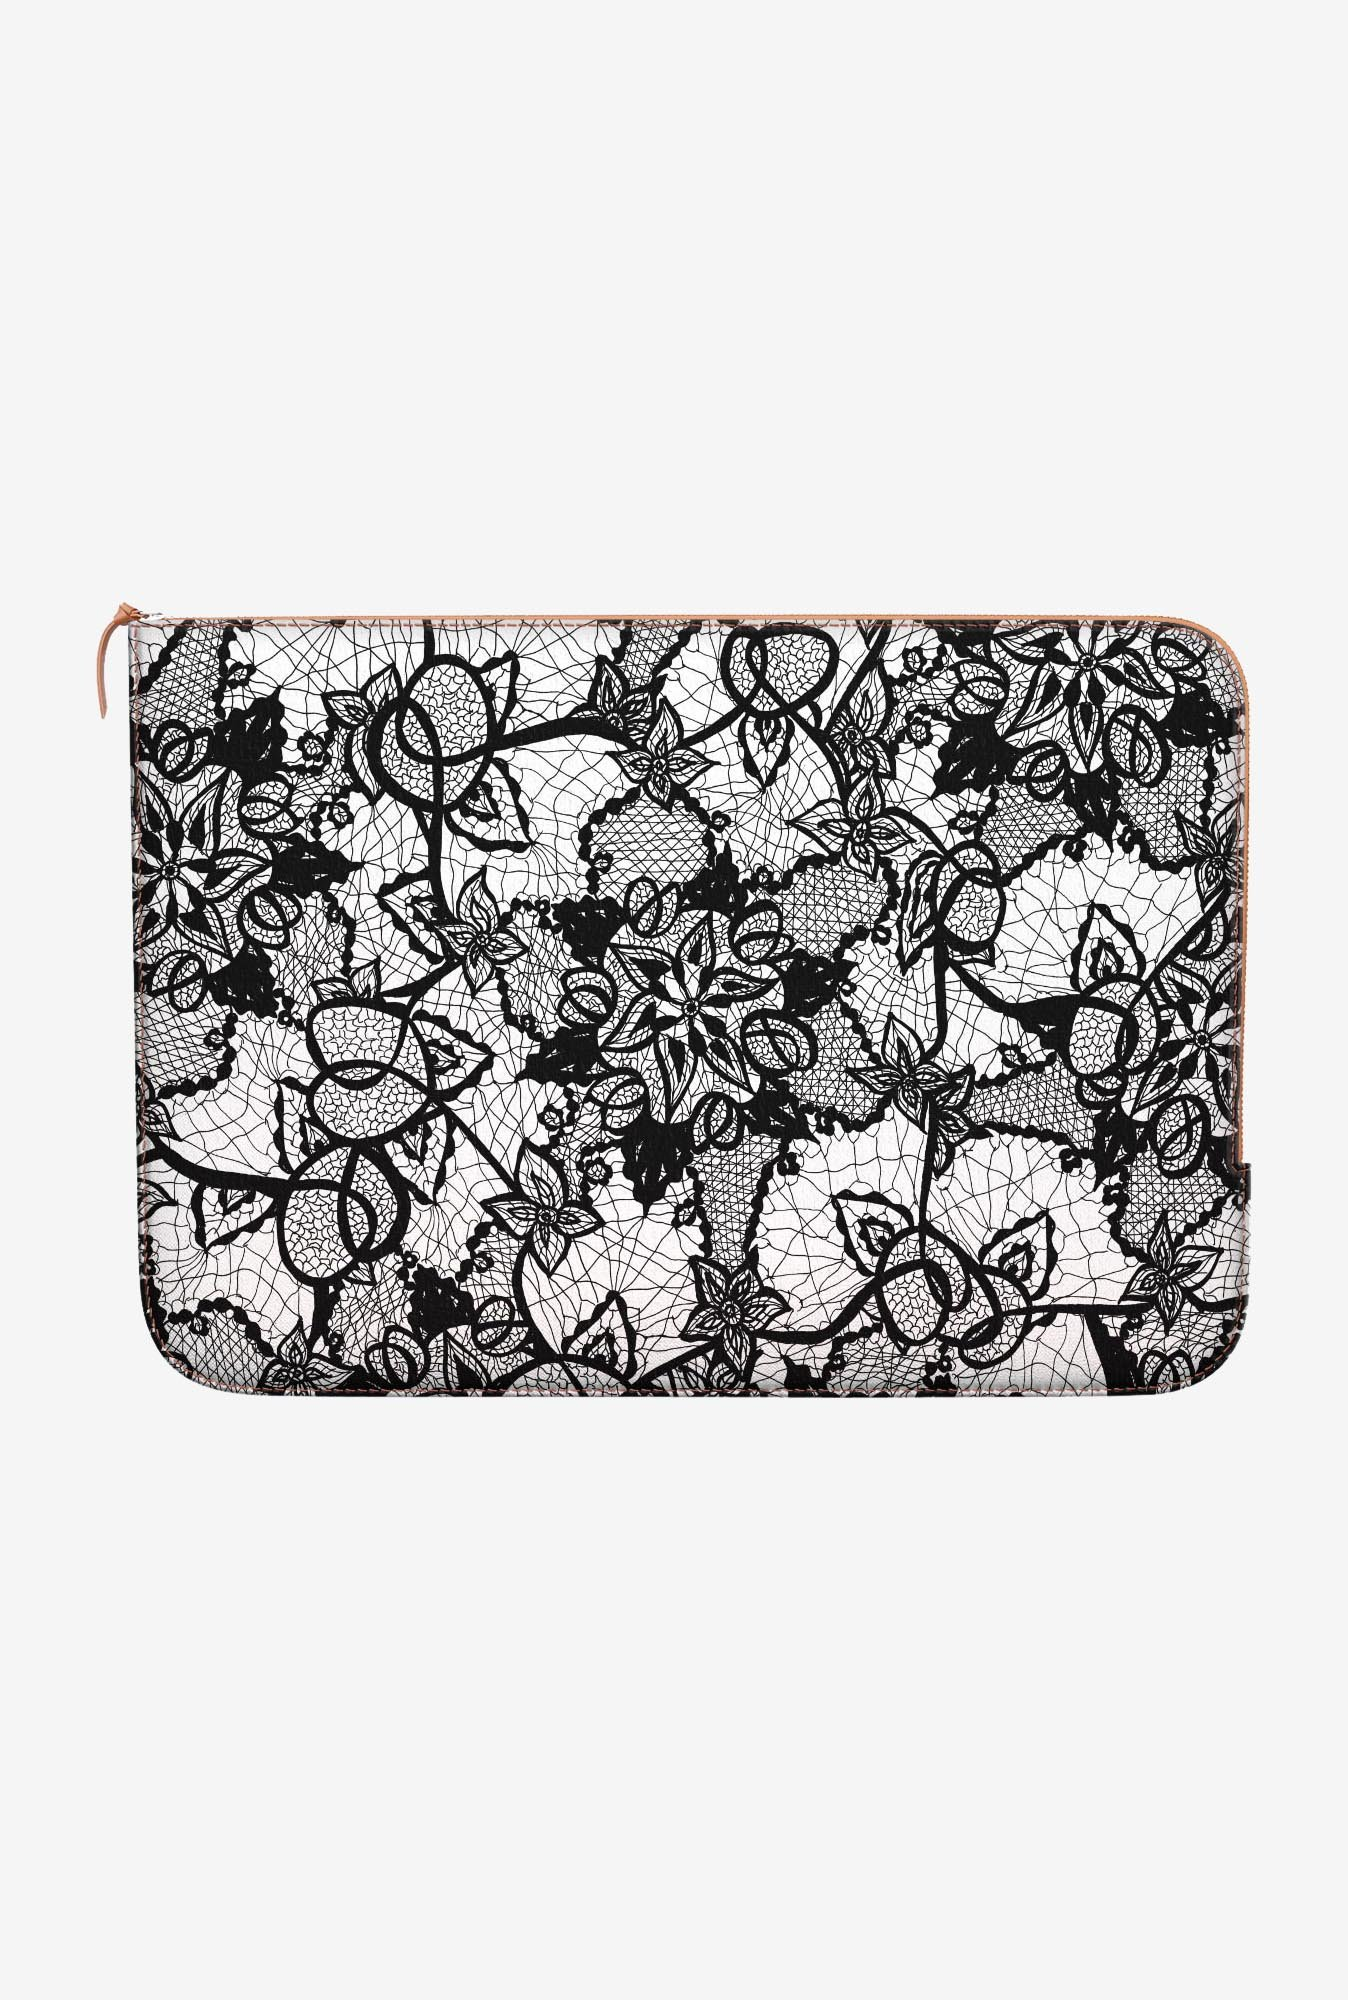 DailyObjects Lace Pattern MacBook Air 13 Zippered Sleeve